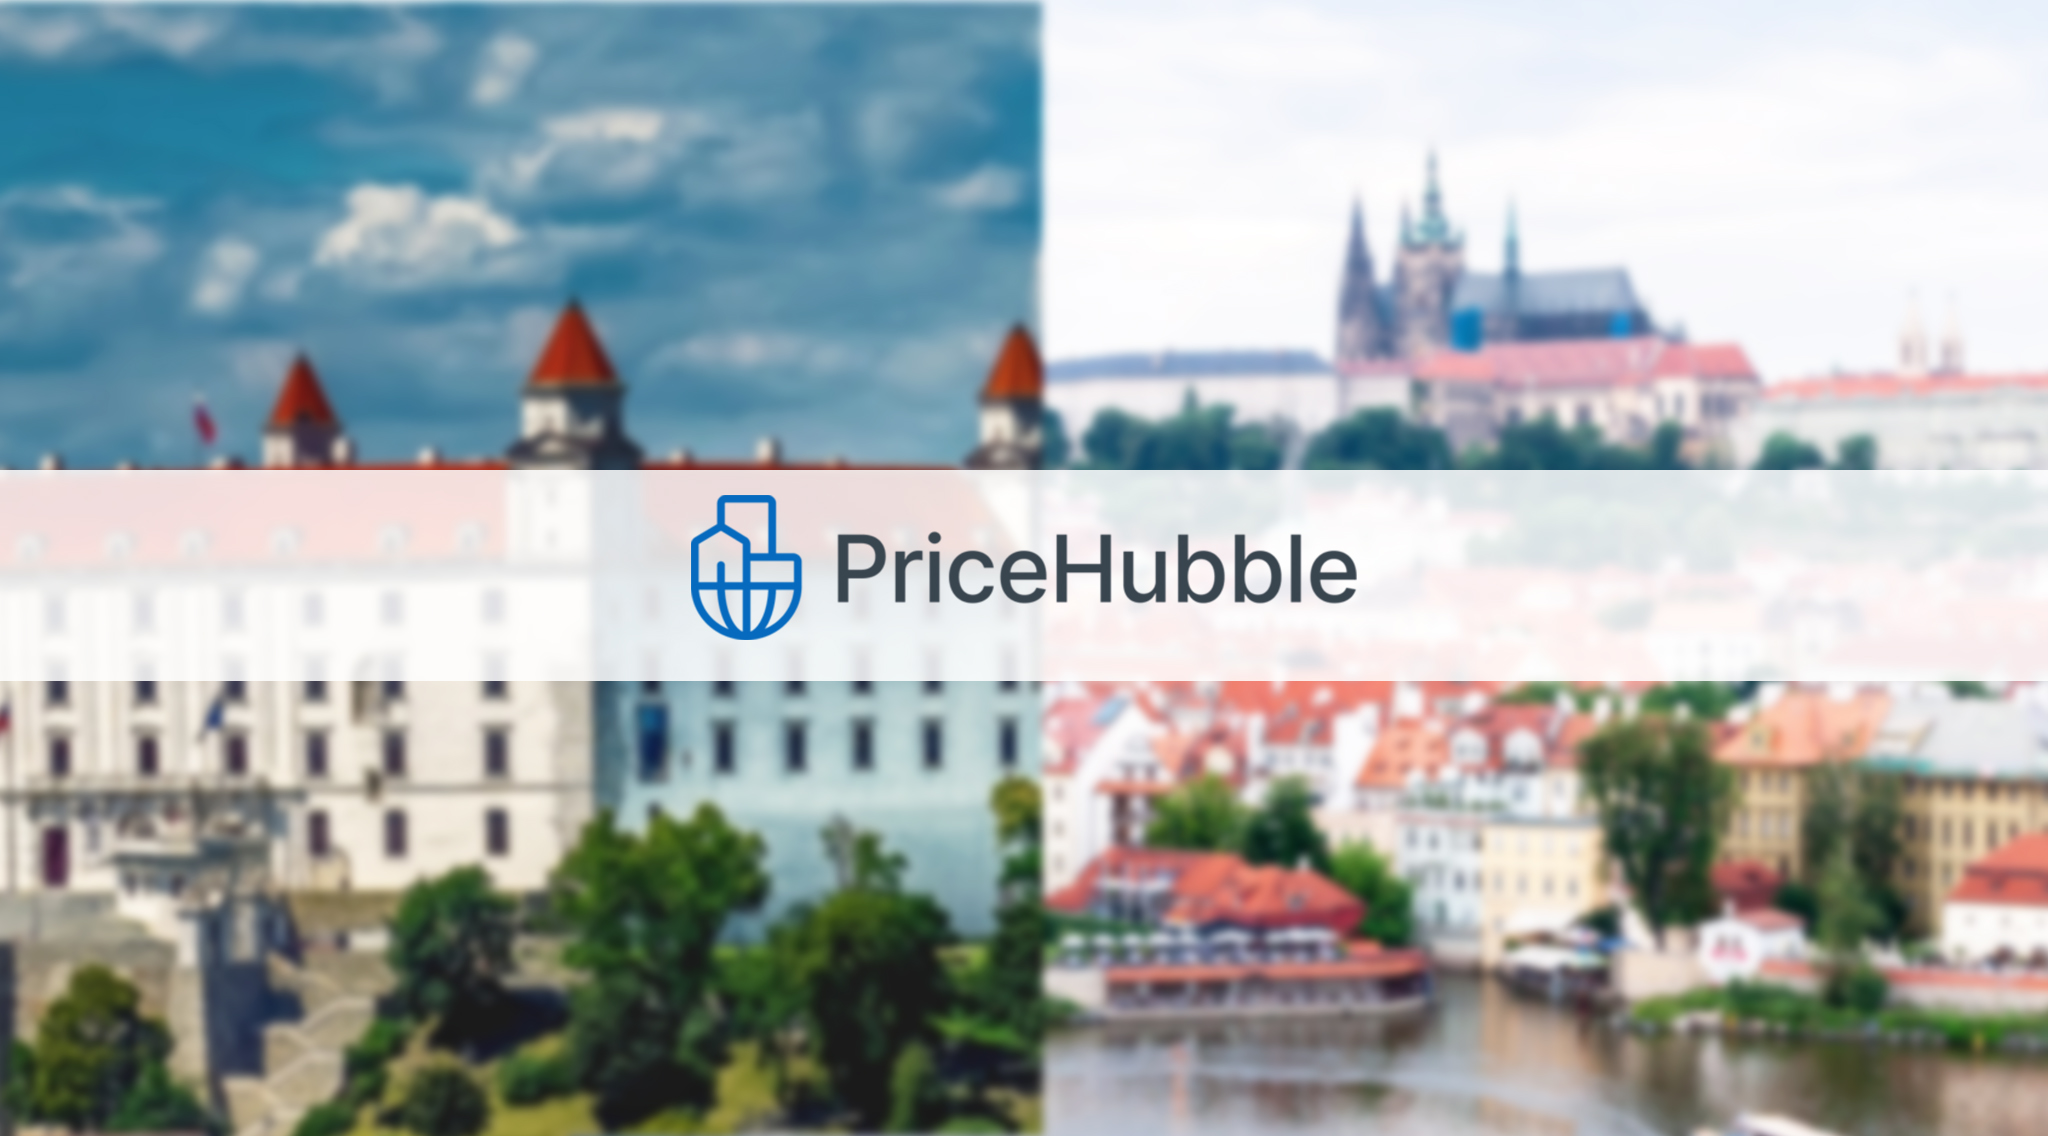 Pricehubble Acquires Proptech Realtify, Expands to Czech ...